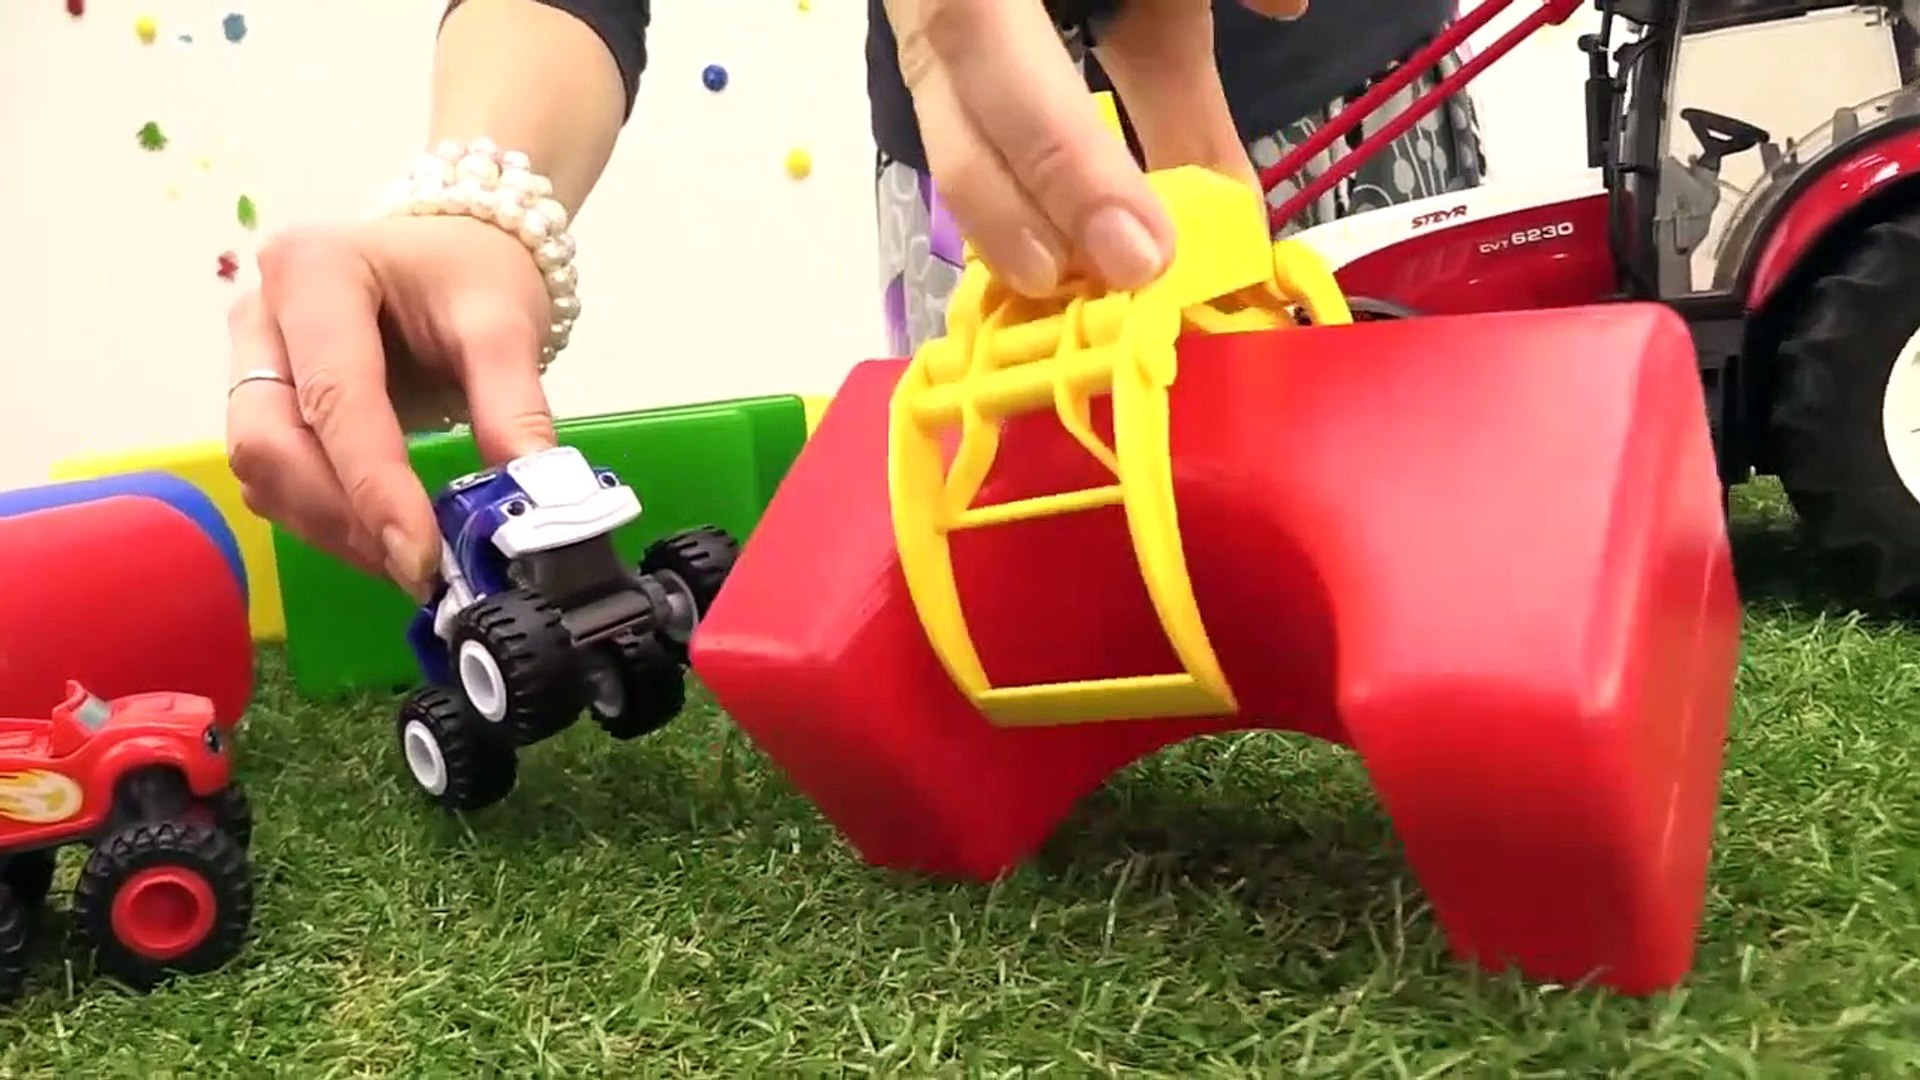 SMELLY TOY TRUCKS JUMP! - Toy Trucks stories for kids! Videos for kids - Blaze Toy Construction Si